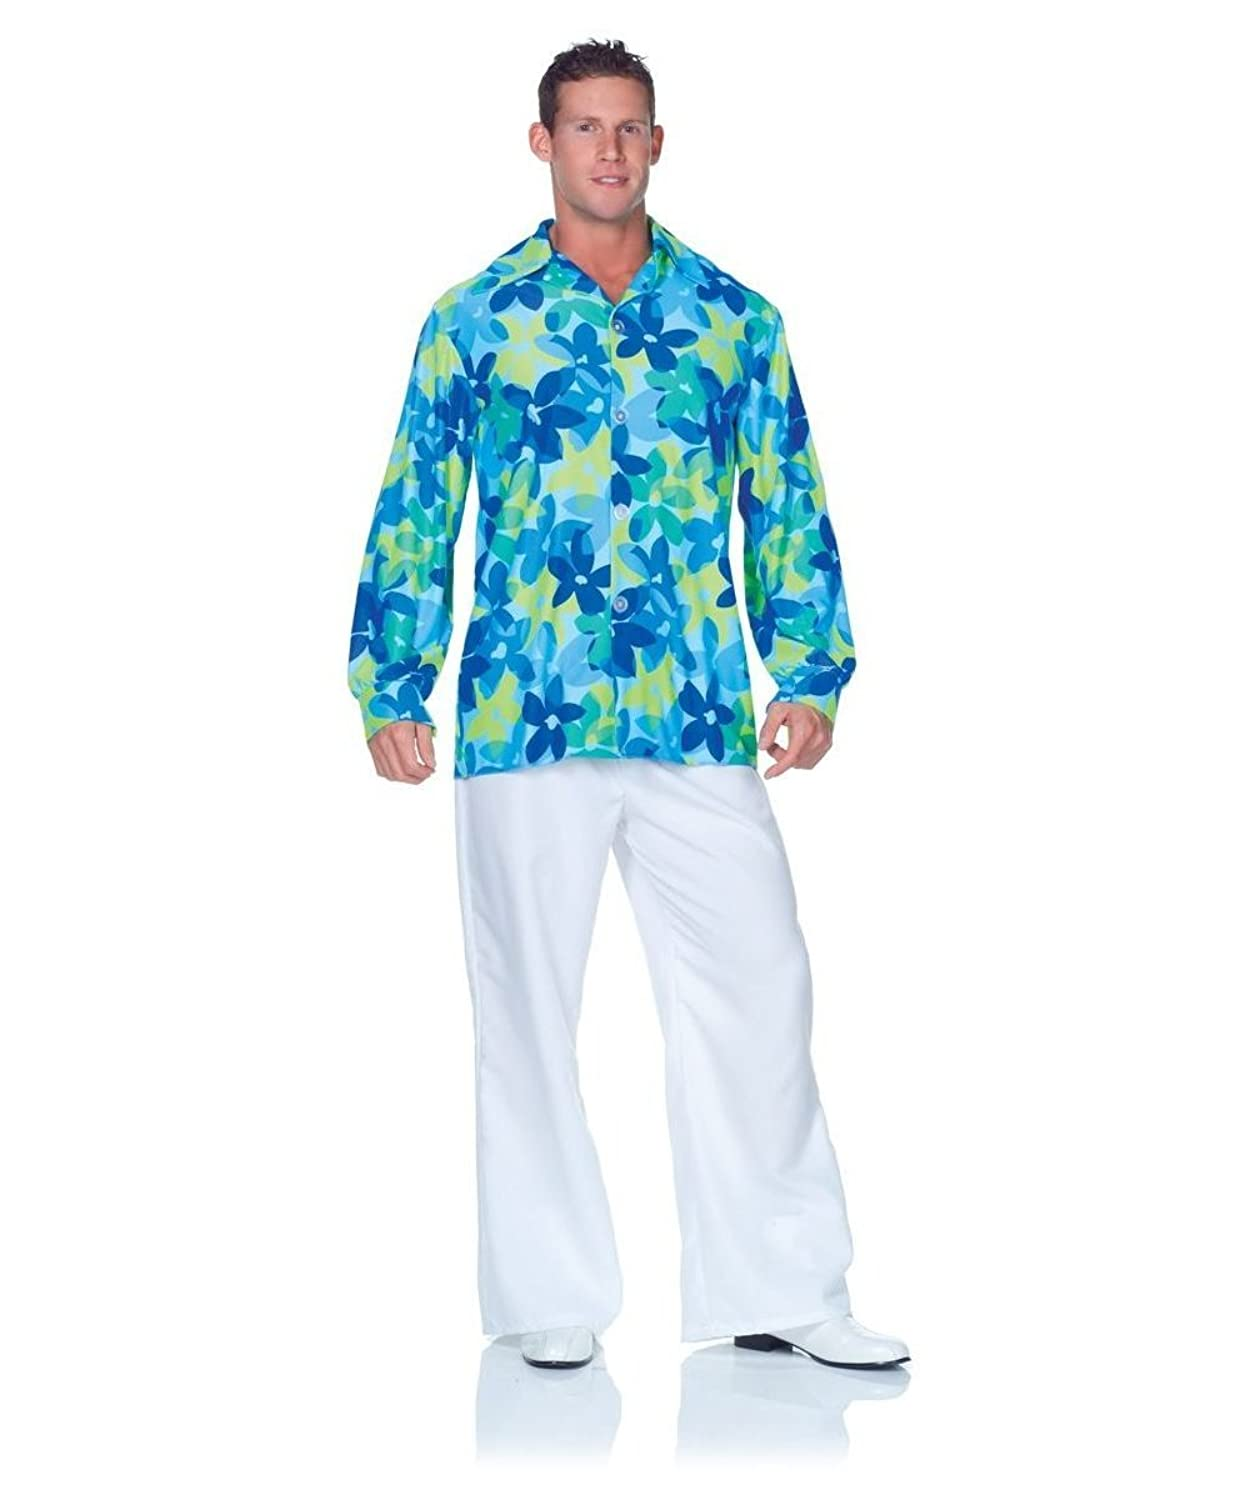 60s -70s  Men's Costumes : Hippie, Disco, Beatles Underwraps Mens 60s Flowers Shirt  AT vintagedancer.com